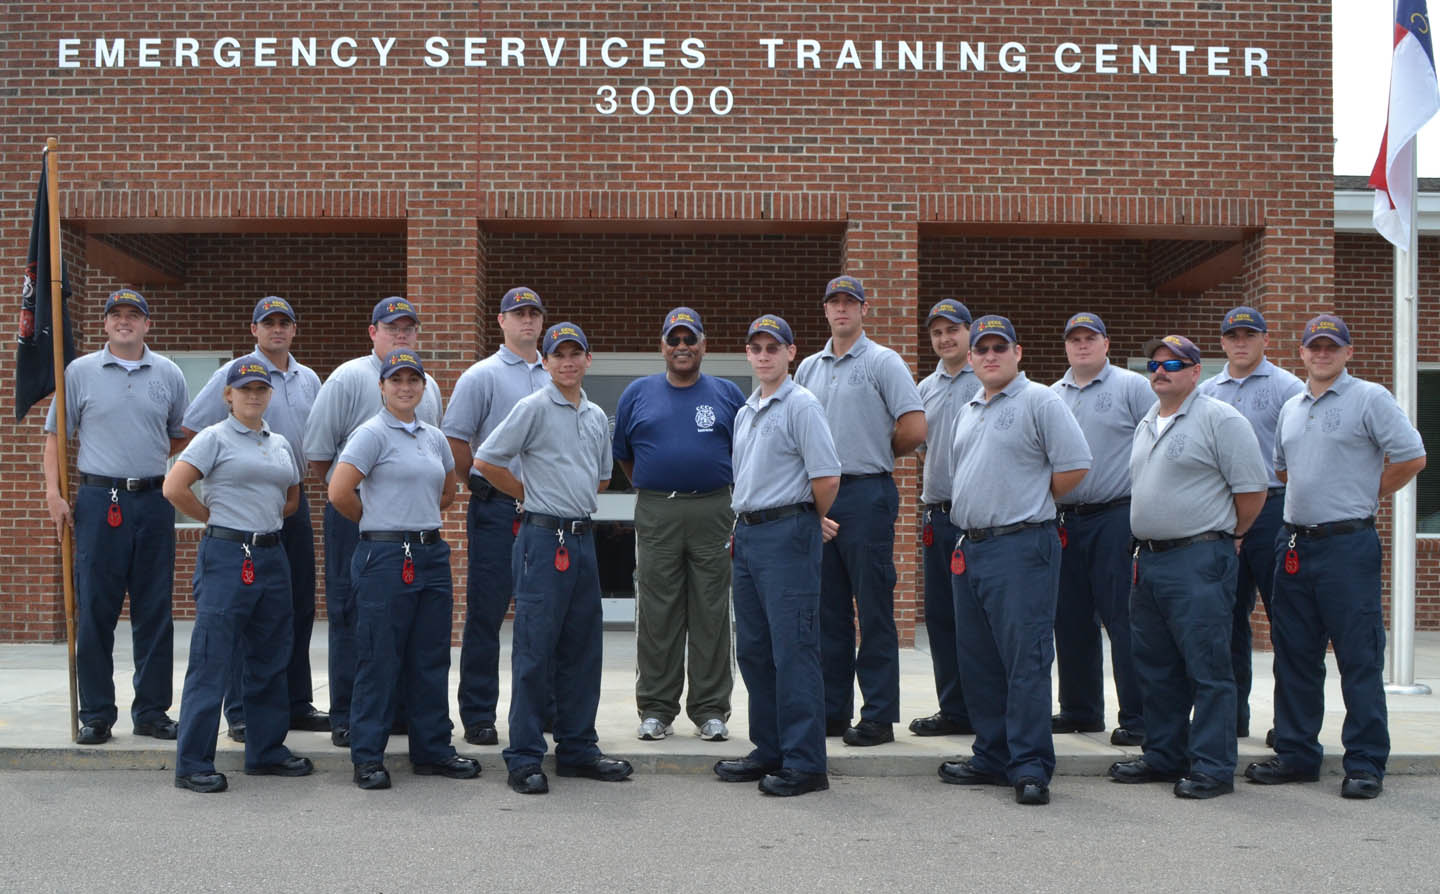 Read the full story, Fire Academy graduates 15